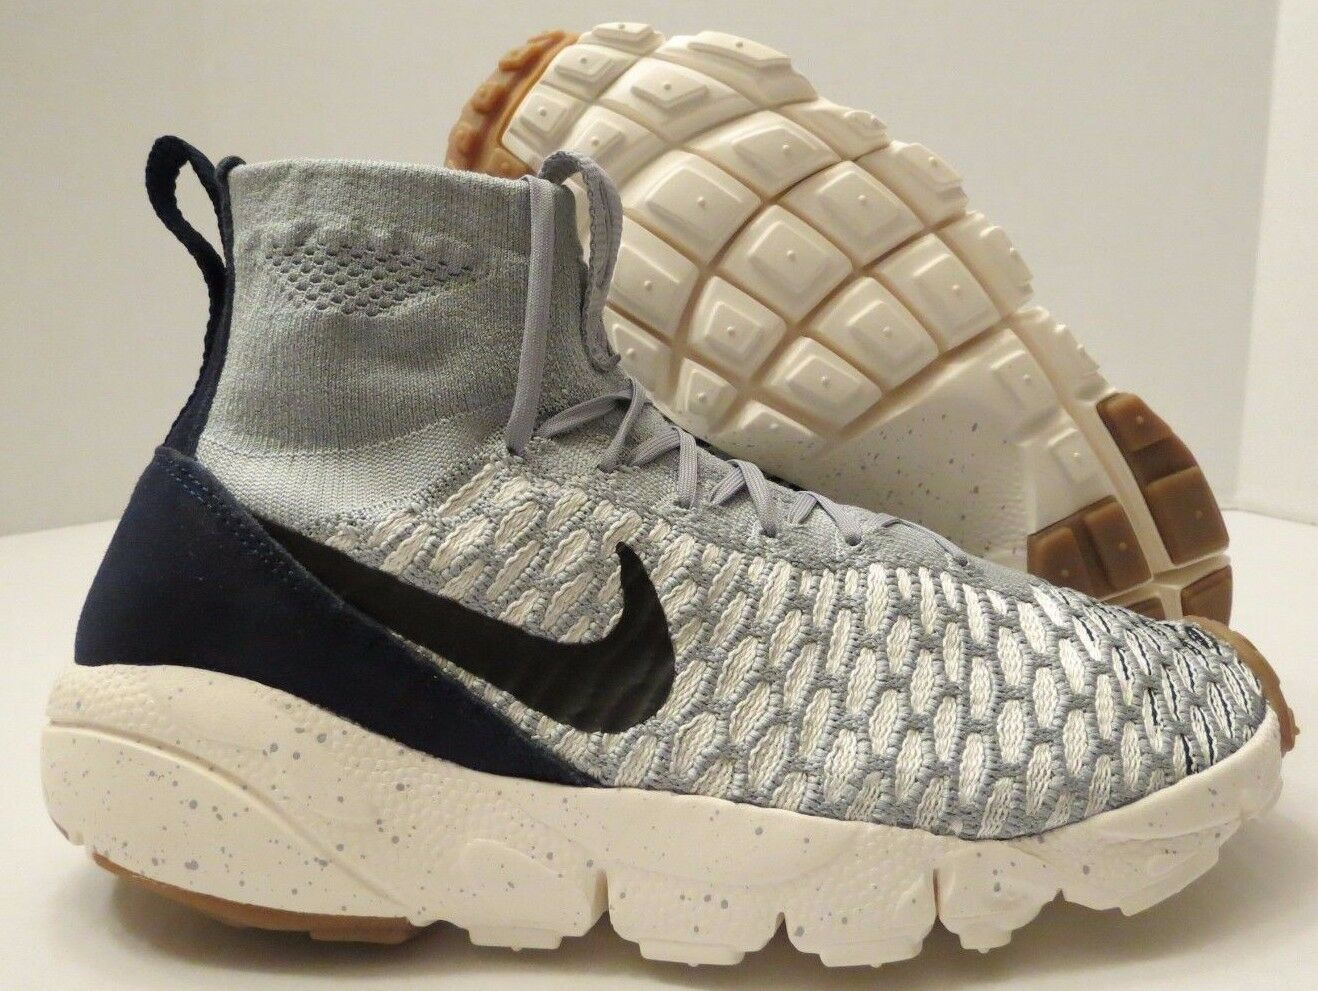 Nike Footscape Magista Flyknit 816560 001 Wolf Grey Obsidian Sail (MEN'S 10.5)